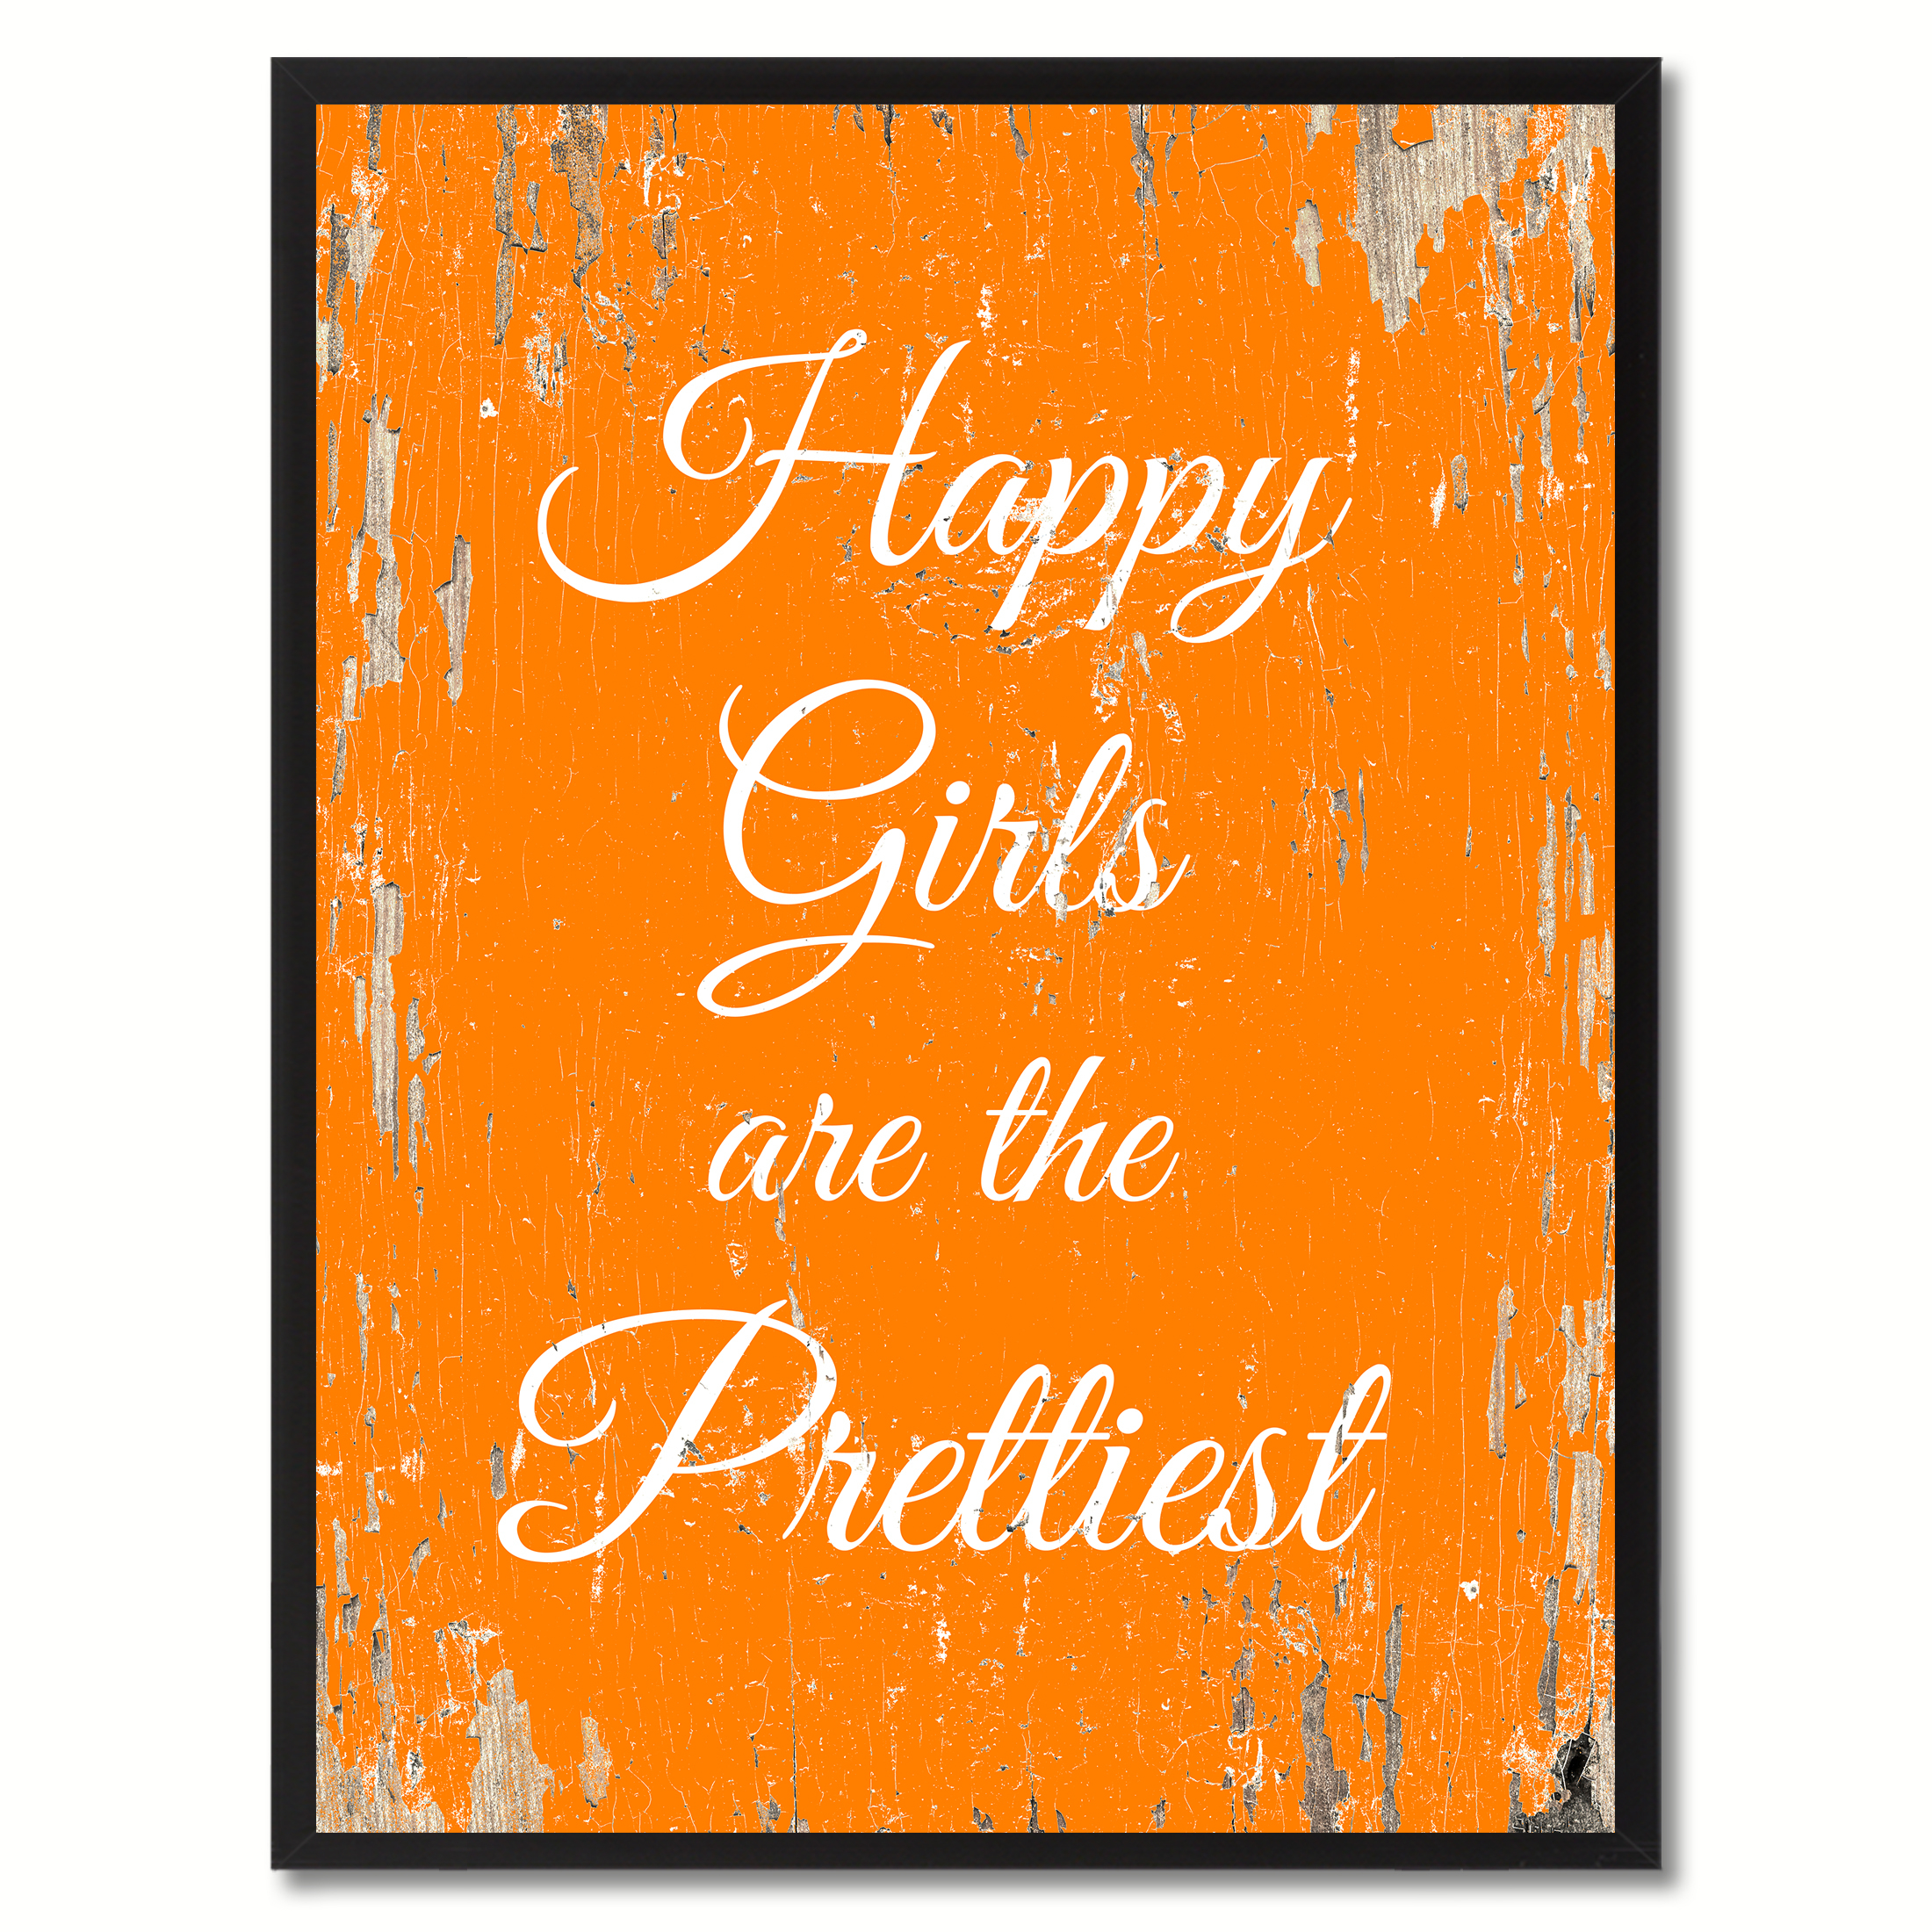 "Happy Girls Are The Prettiest Saying Canvas Print with Picture Frame Home Decor Wall Art Gifts - 7"" x 9\"""